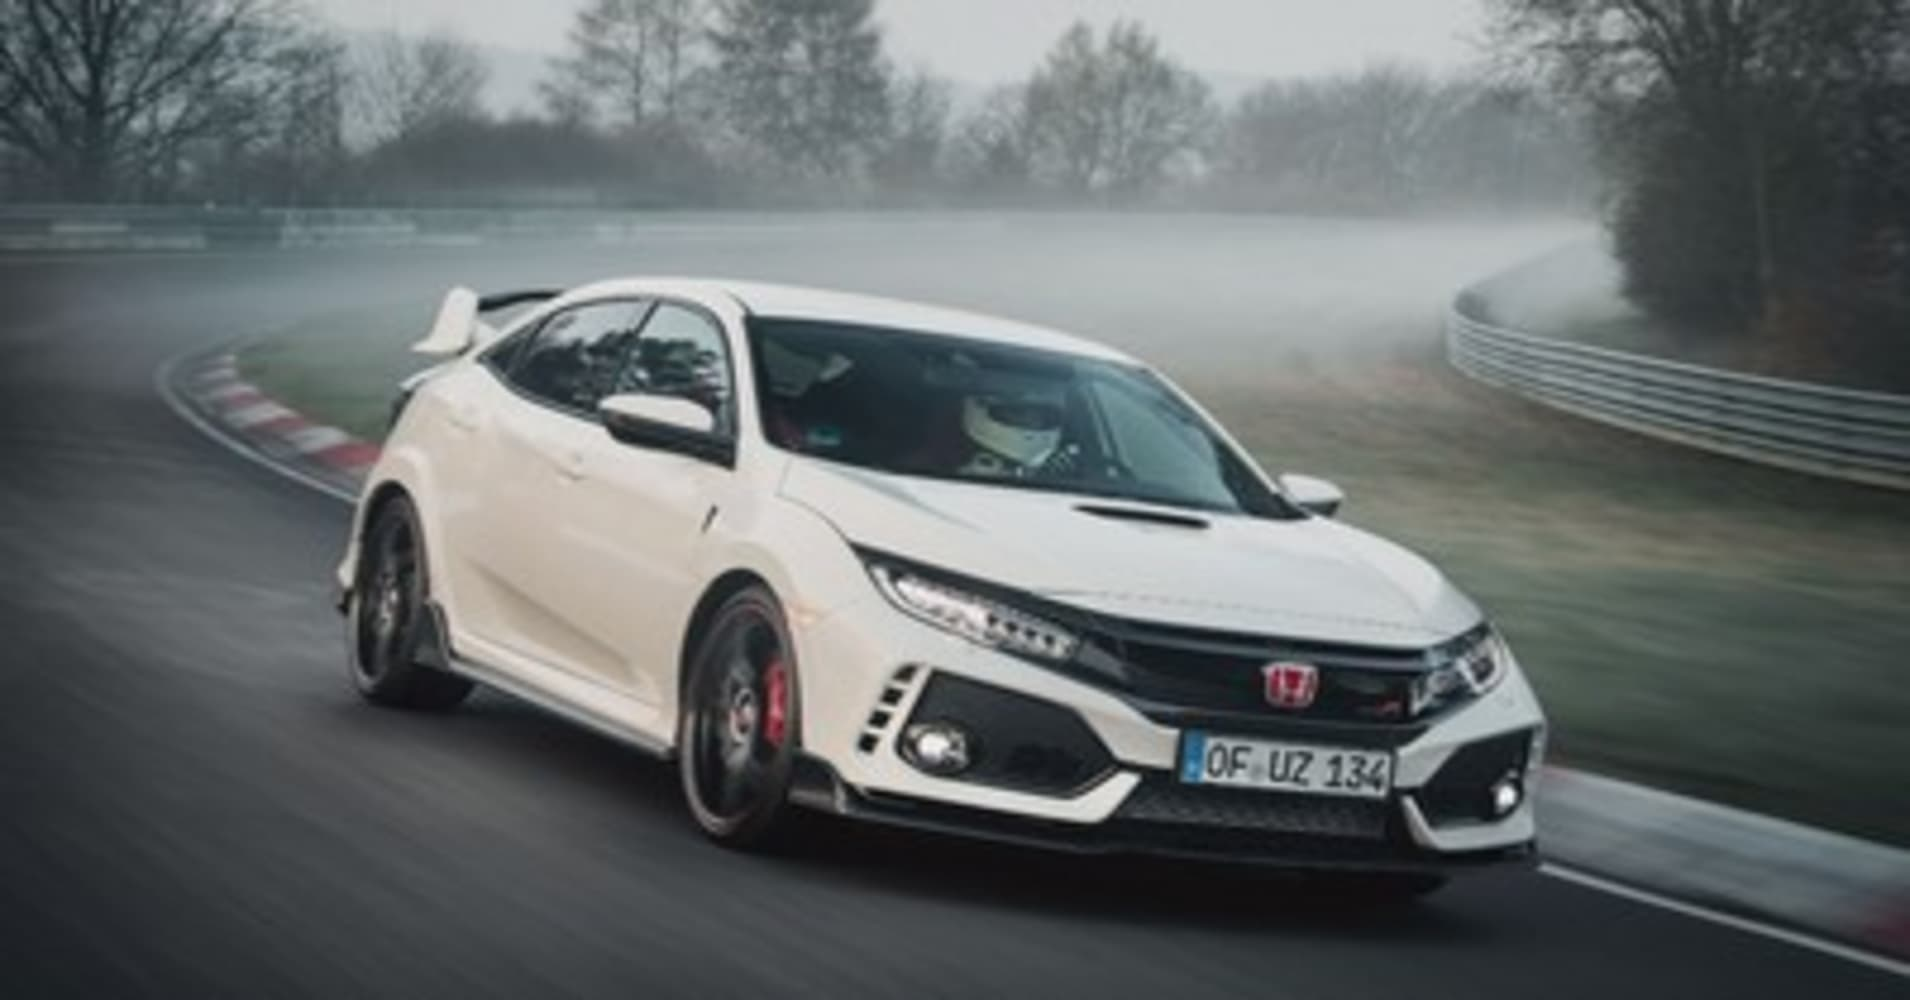 The 2017 honda civic type r just broke the record at n rburgring as the world s fastest fwd car